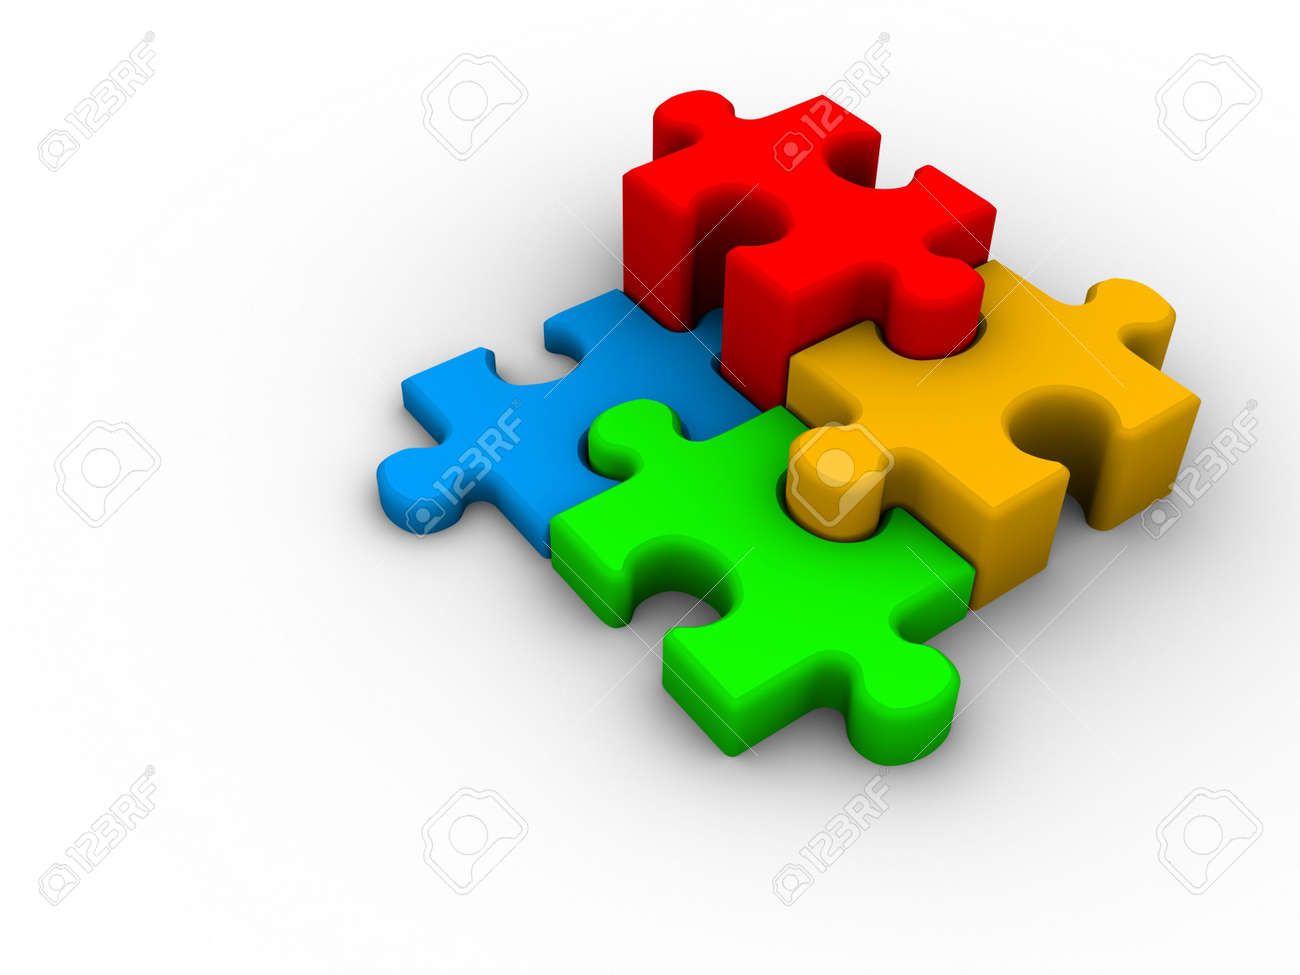 Four Connected Puzzle Pieces On White Background